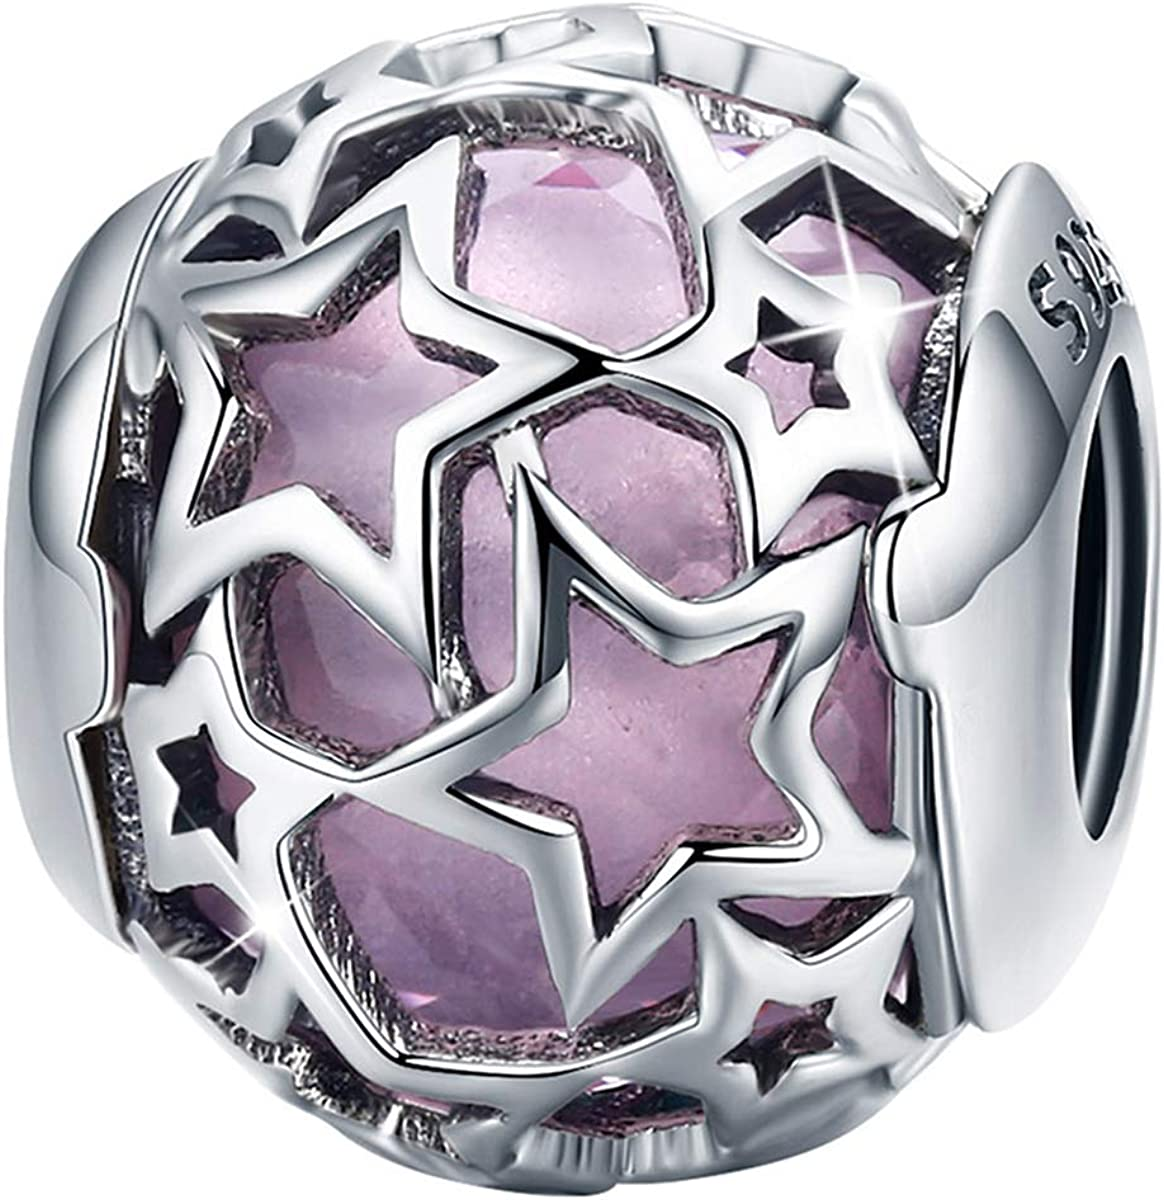 FOREVER QUEEN Starry Night Bead Sky Twinkling Star Charm 925 Sterling Silver Murano Glass Charms Beads Fit for Bracelet & Necklaces, Gifts for Women Girls